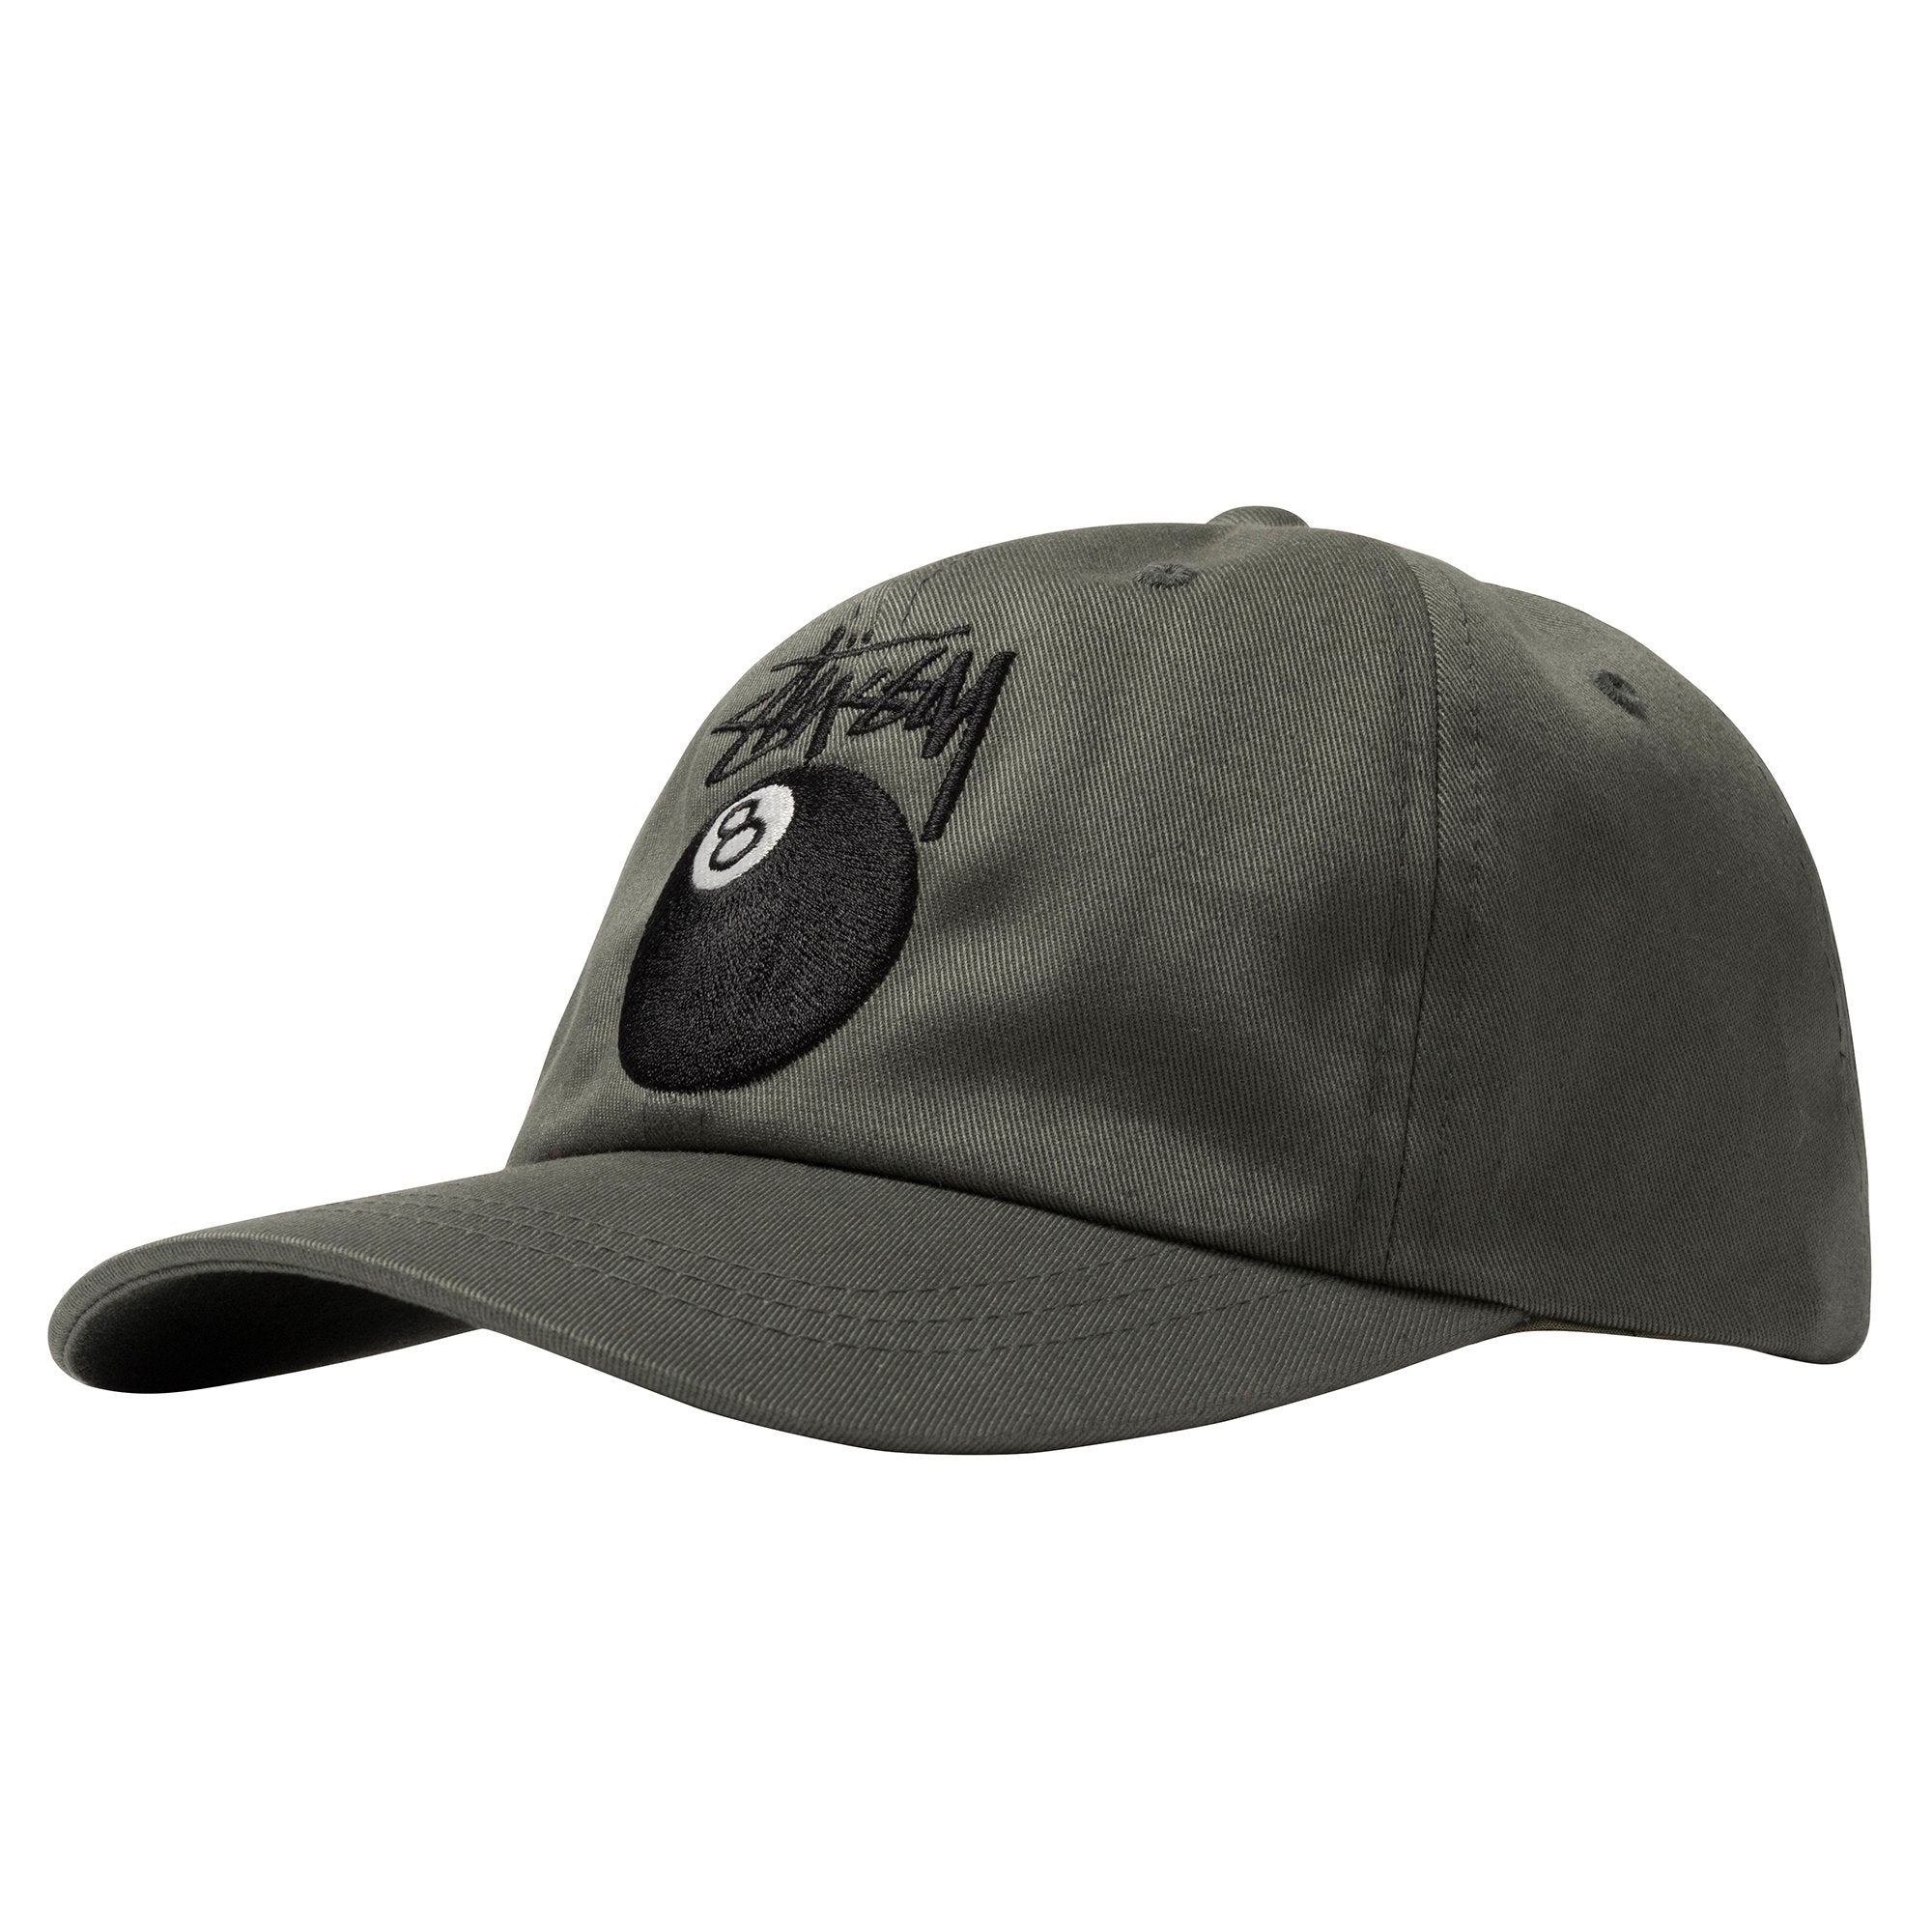 STUSSY HATS STOCK 8 BALL LOW PRO CAP